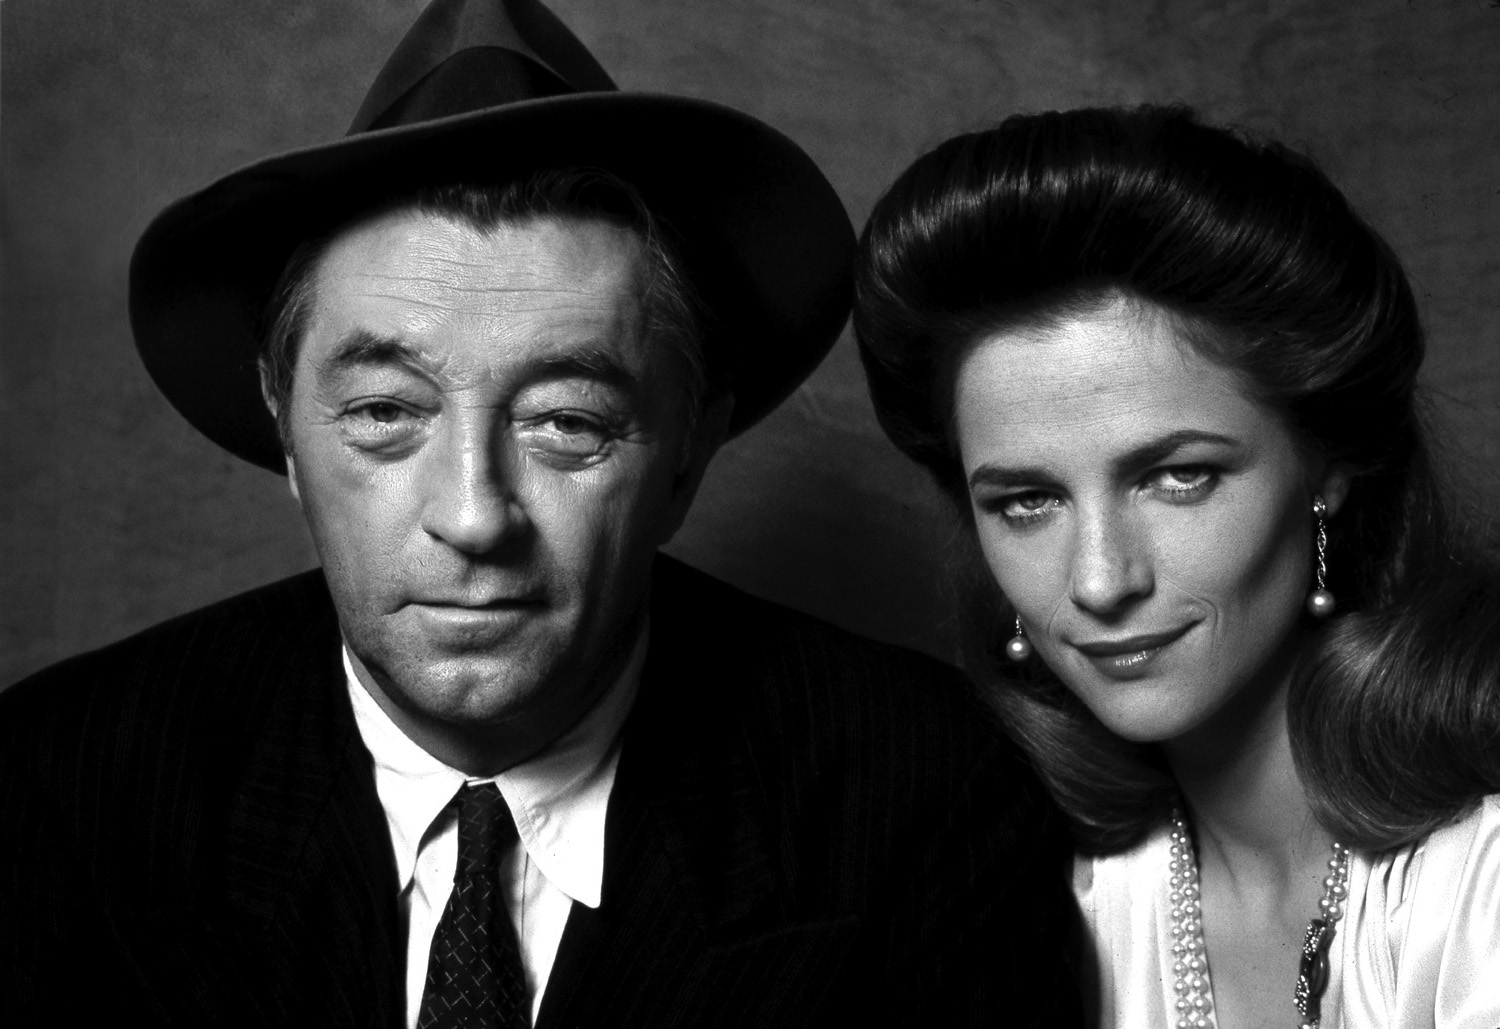 Robert Mitchum and Charlotte Rampling